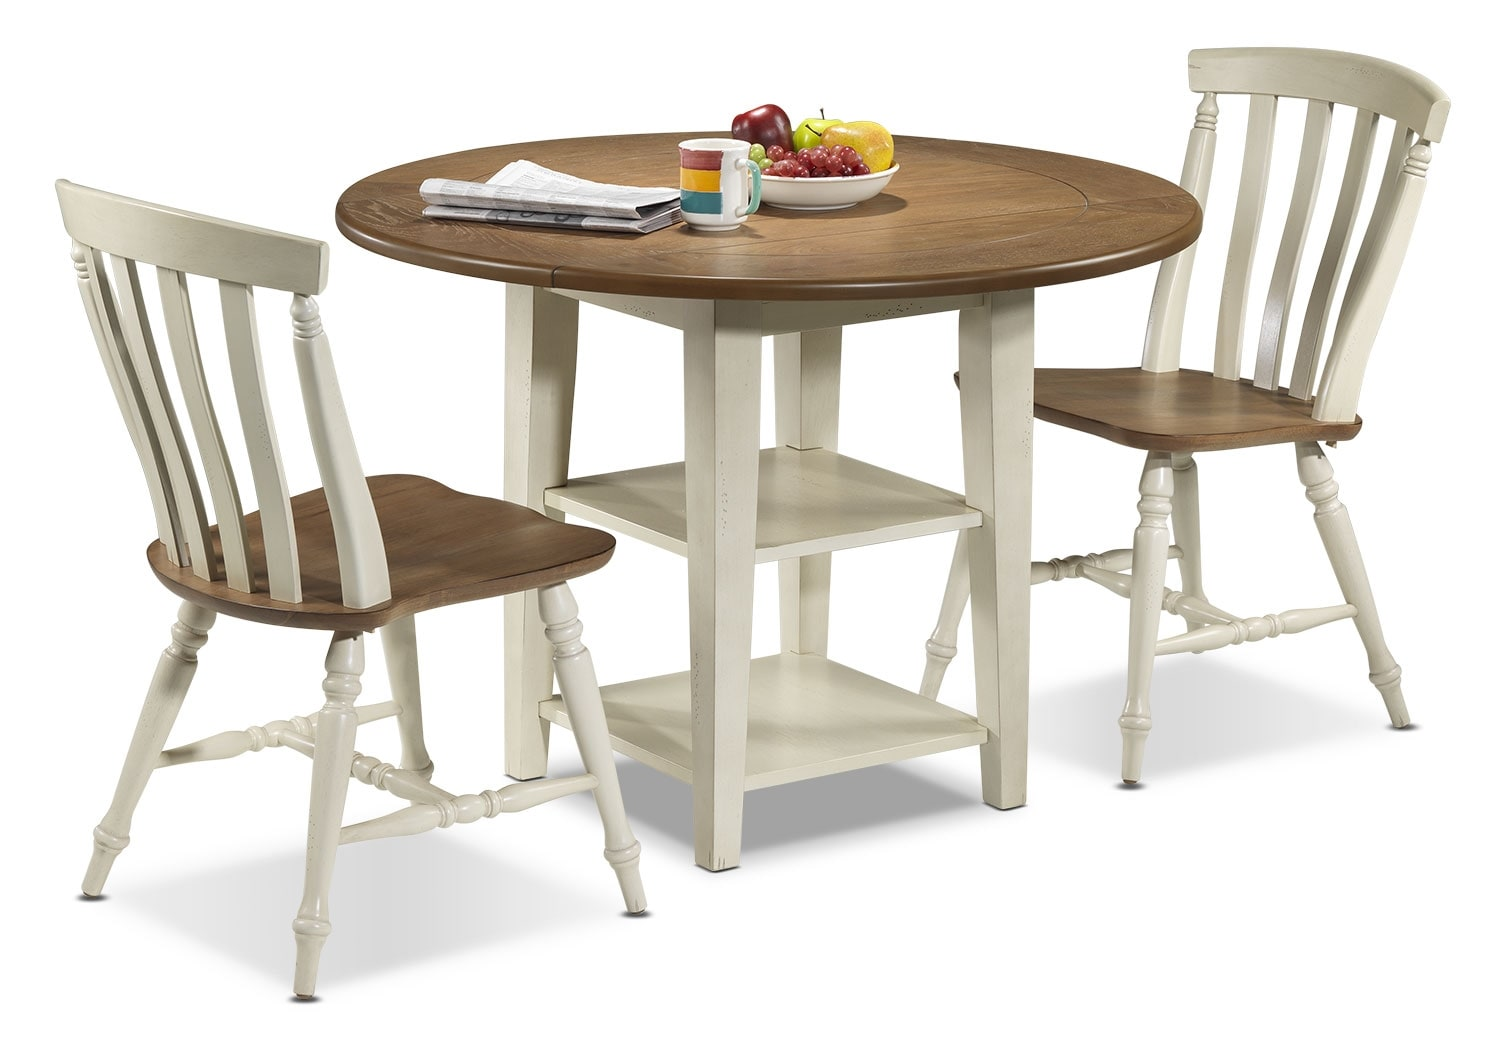 Fresco 3 piece dinette set driftwood cream leon 39 s for 3 piece dining room table